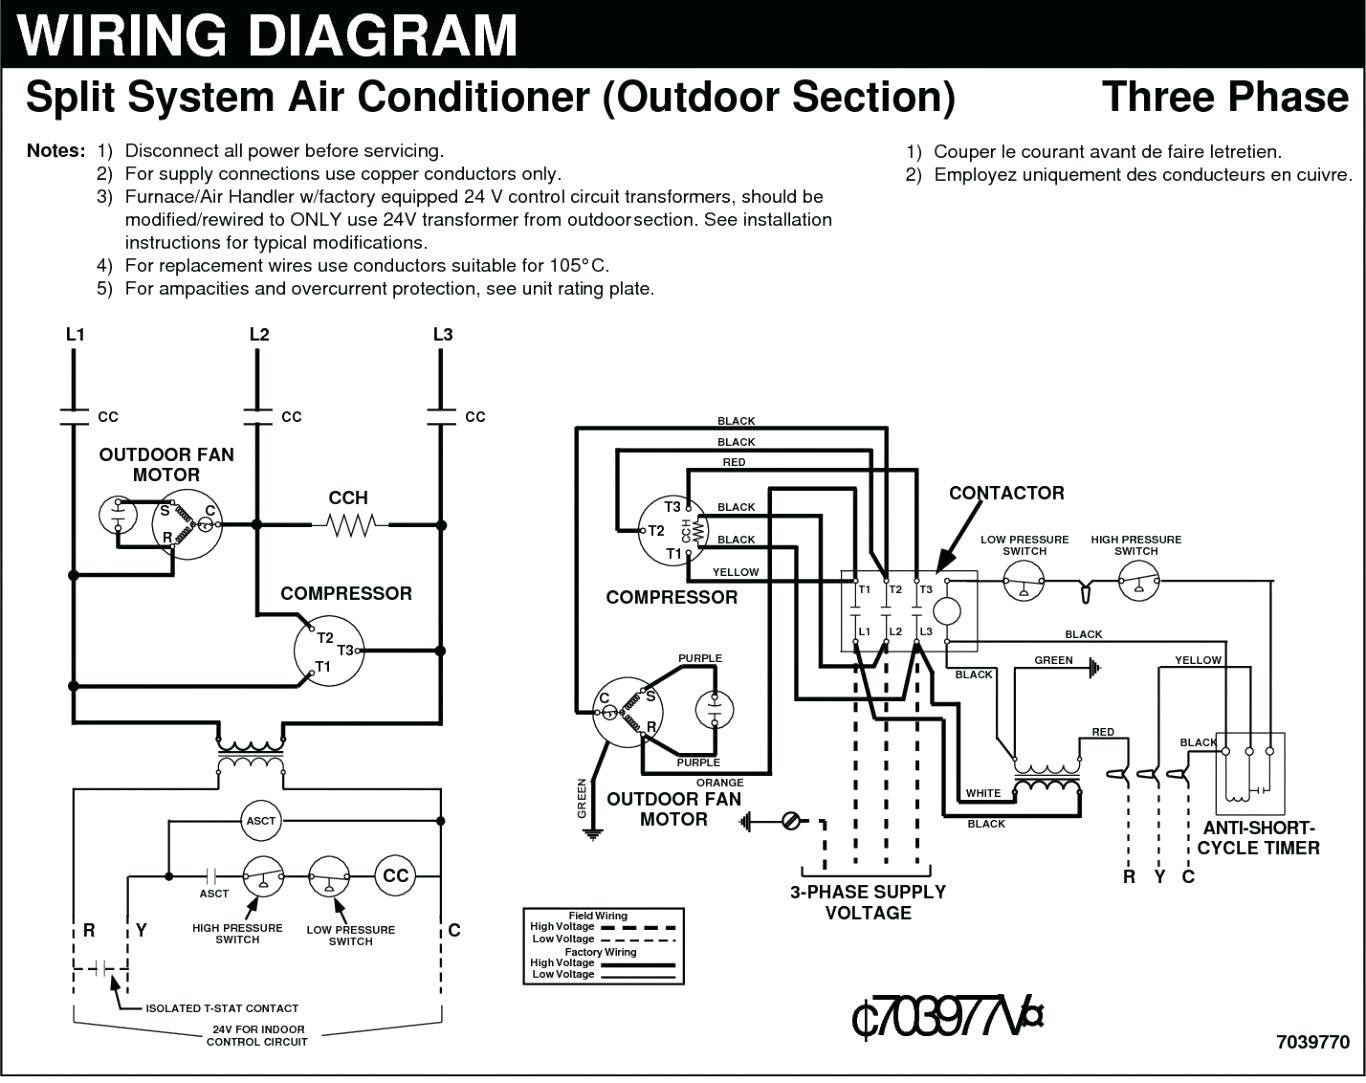 Copeland 3 Phase Compressor Wiring Diagram